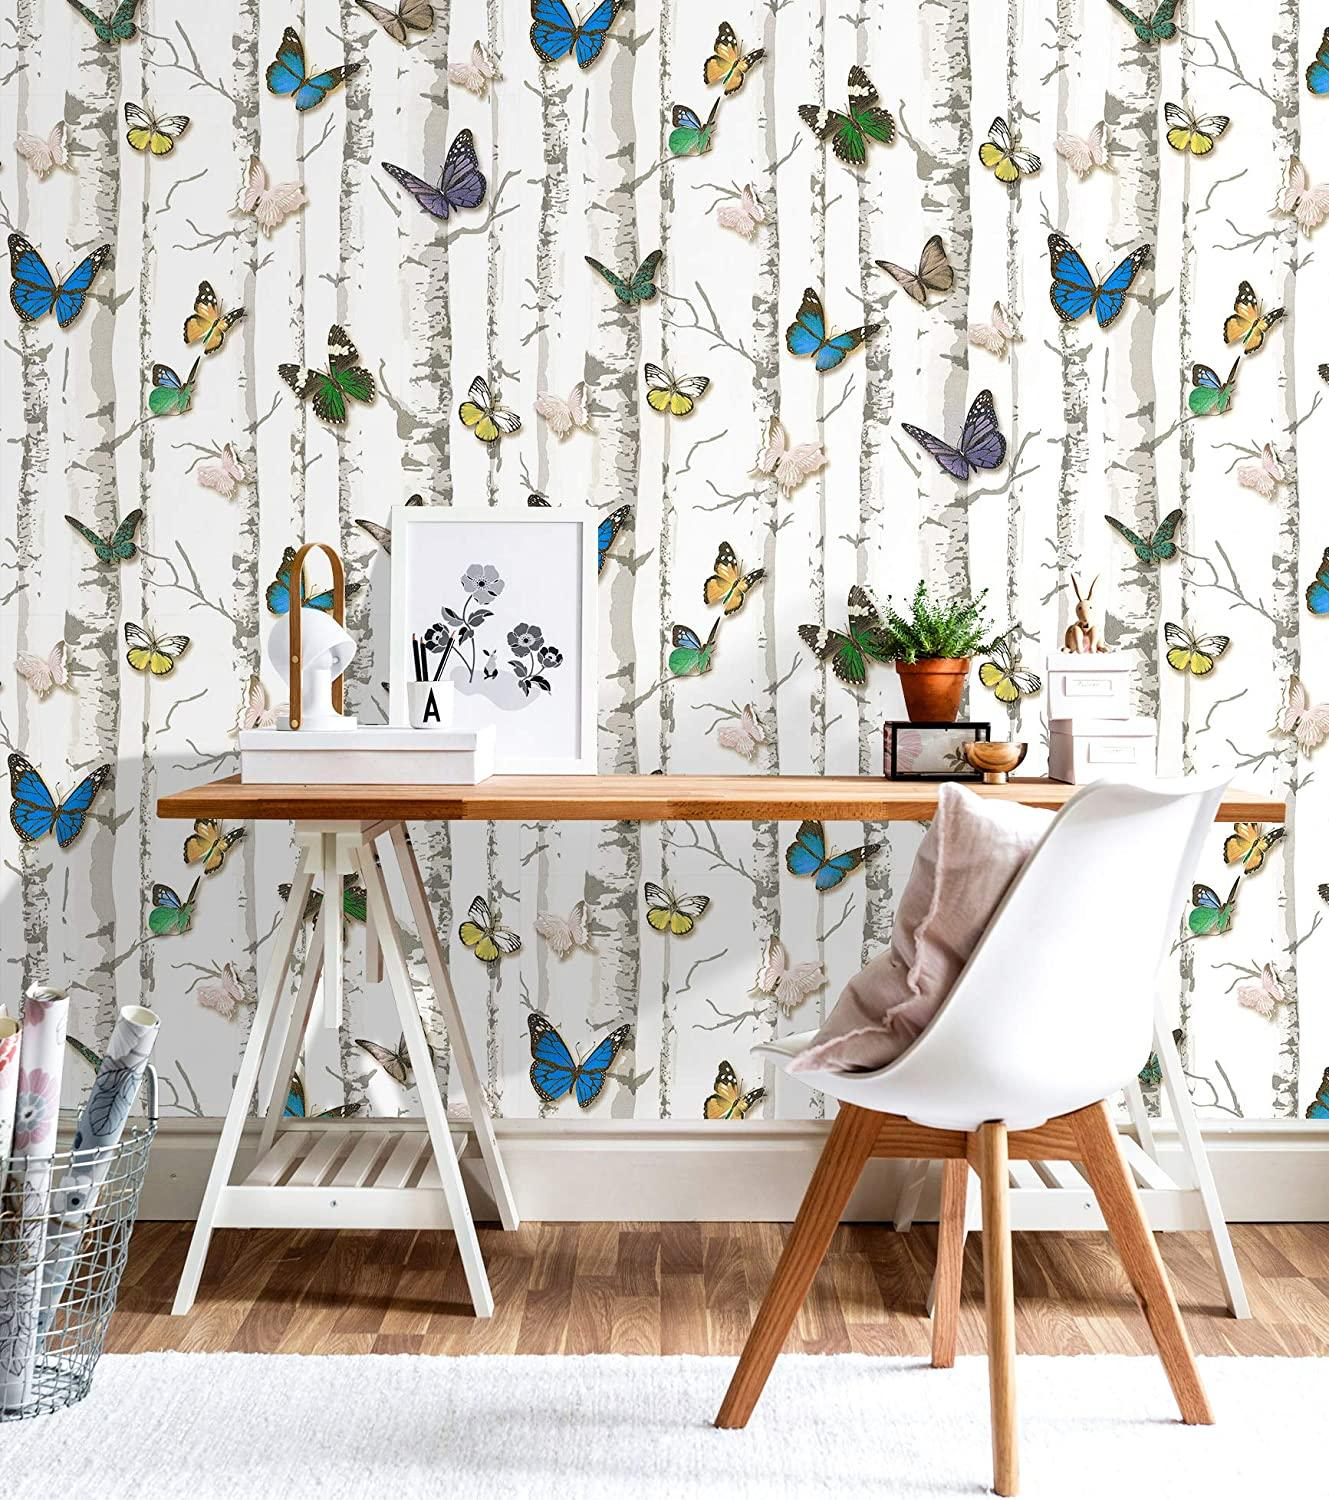 Luckyyj Birch Tree W Butterfly Peel Stick Wallpaper Vinyl Self Adhesive Contact Paper For Walls Bathroom Bedroom Home Decor Wallpapers Aliexpress